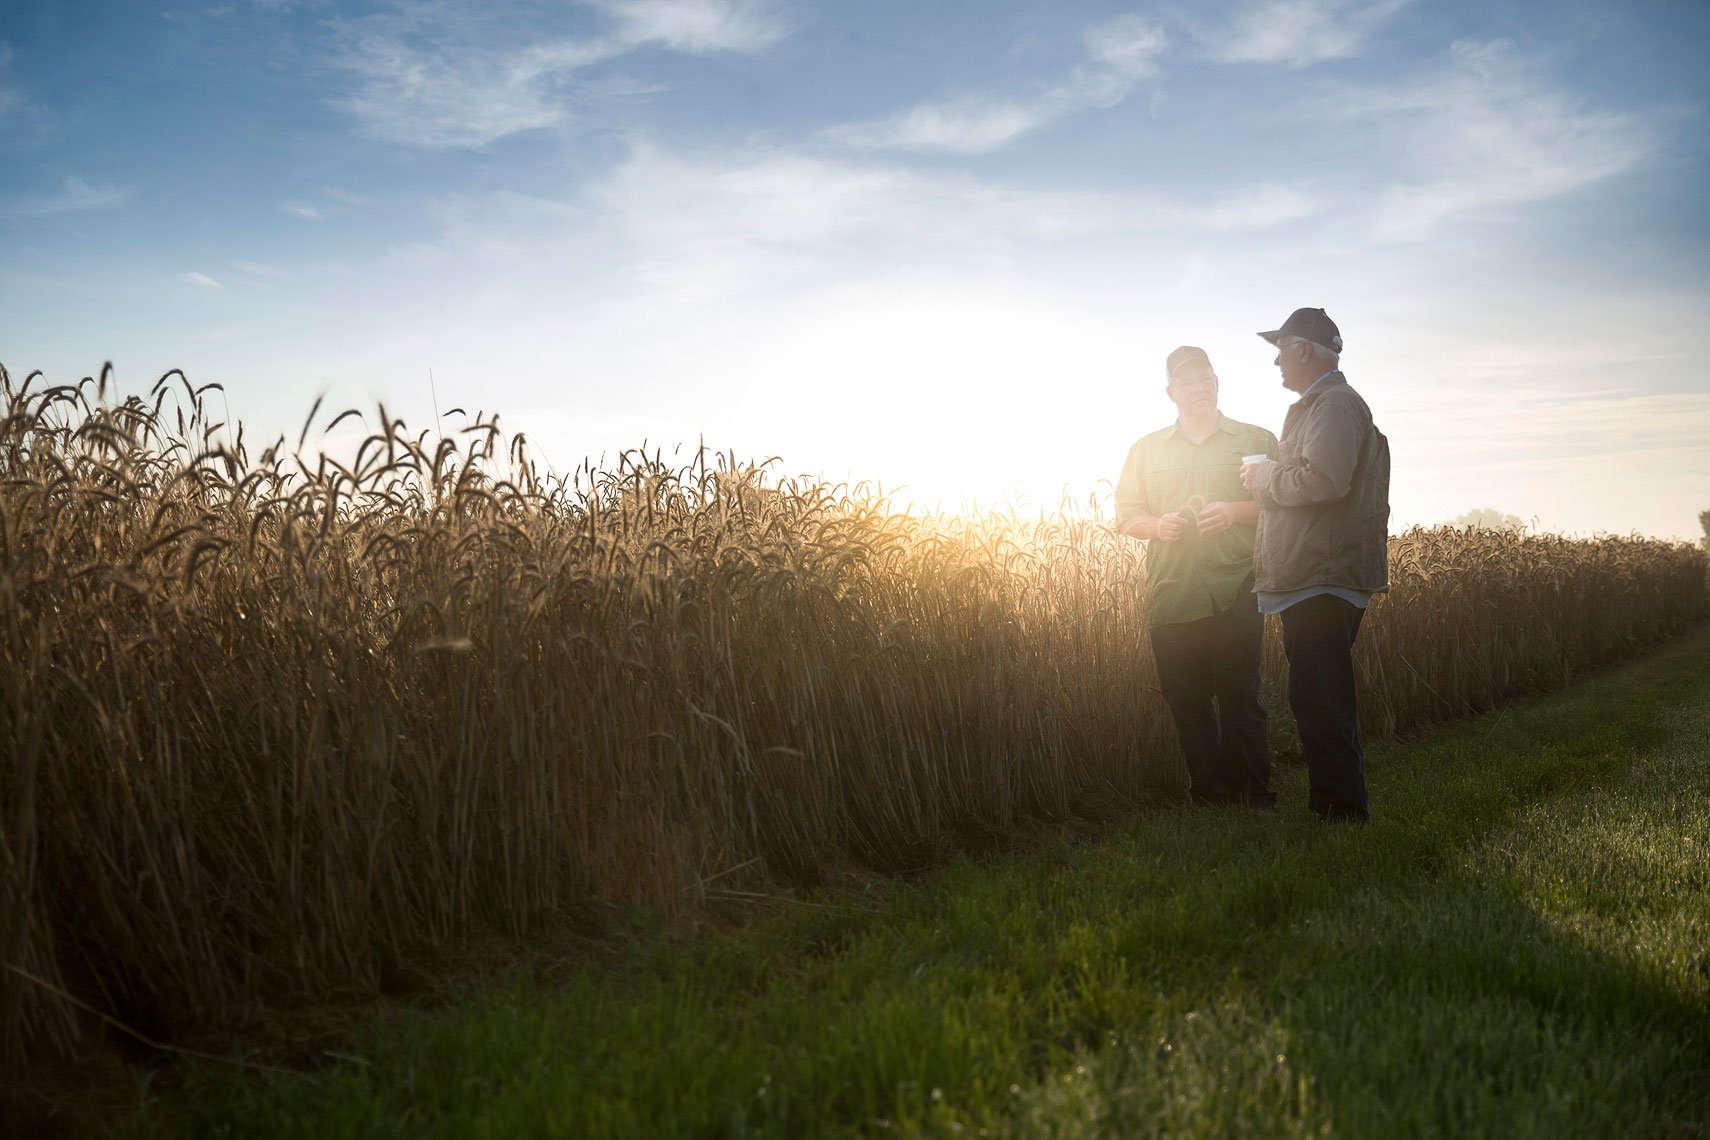 Rye field with 2 farmers | Whiskey Acres Distillery | John Fedele Agricultural Photography